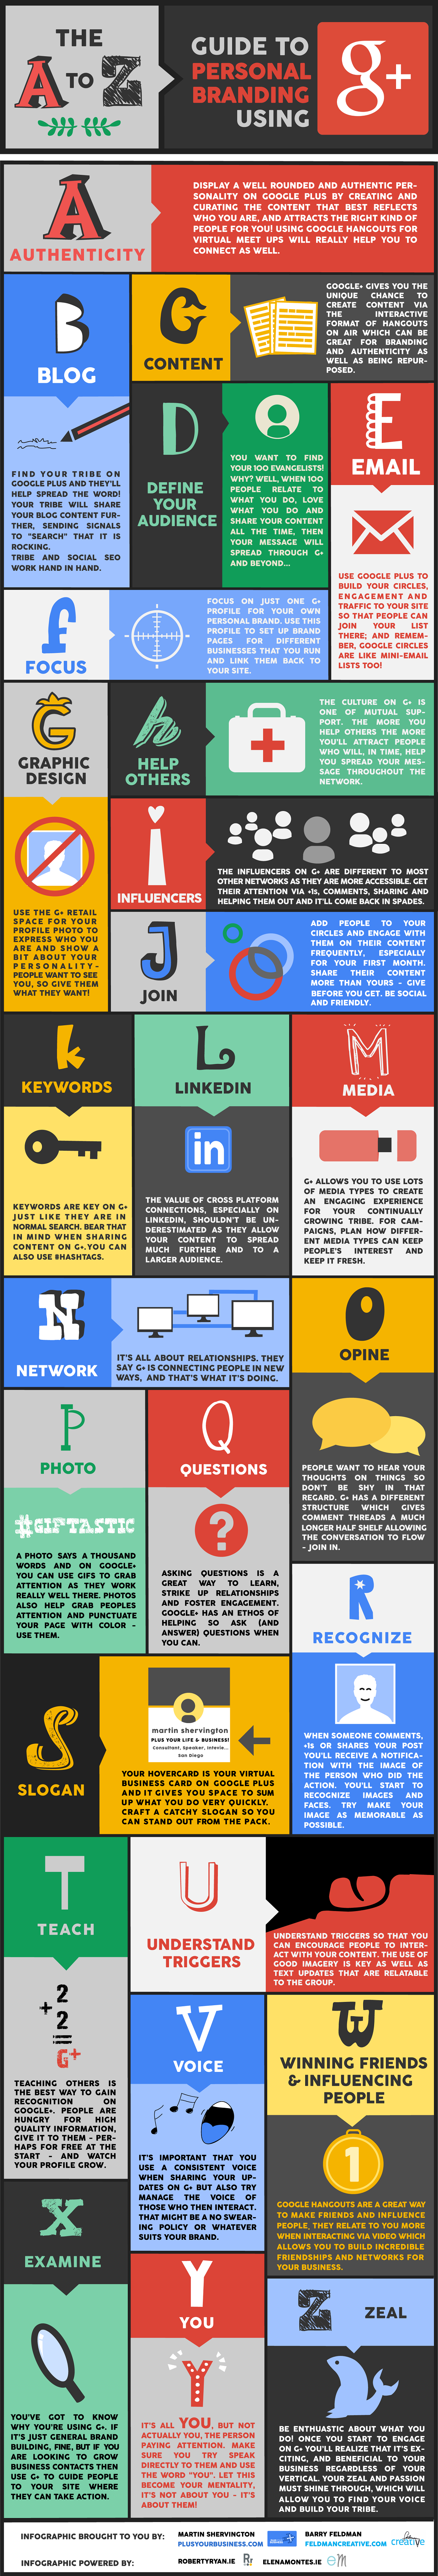 Personal Branding for individuals, businesses and brand using Google+, an A-Z infographic Guide!